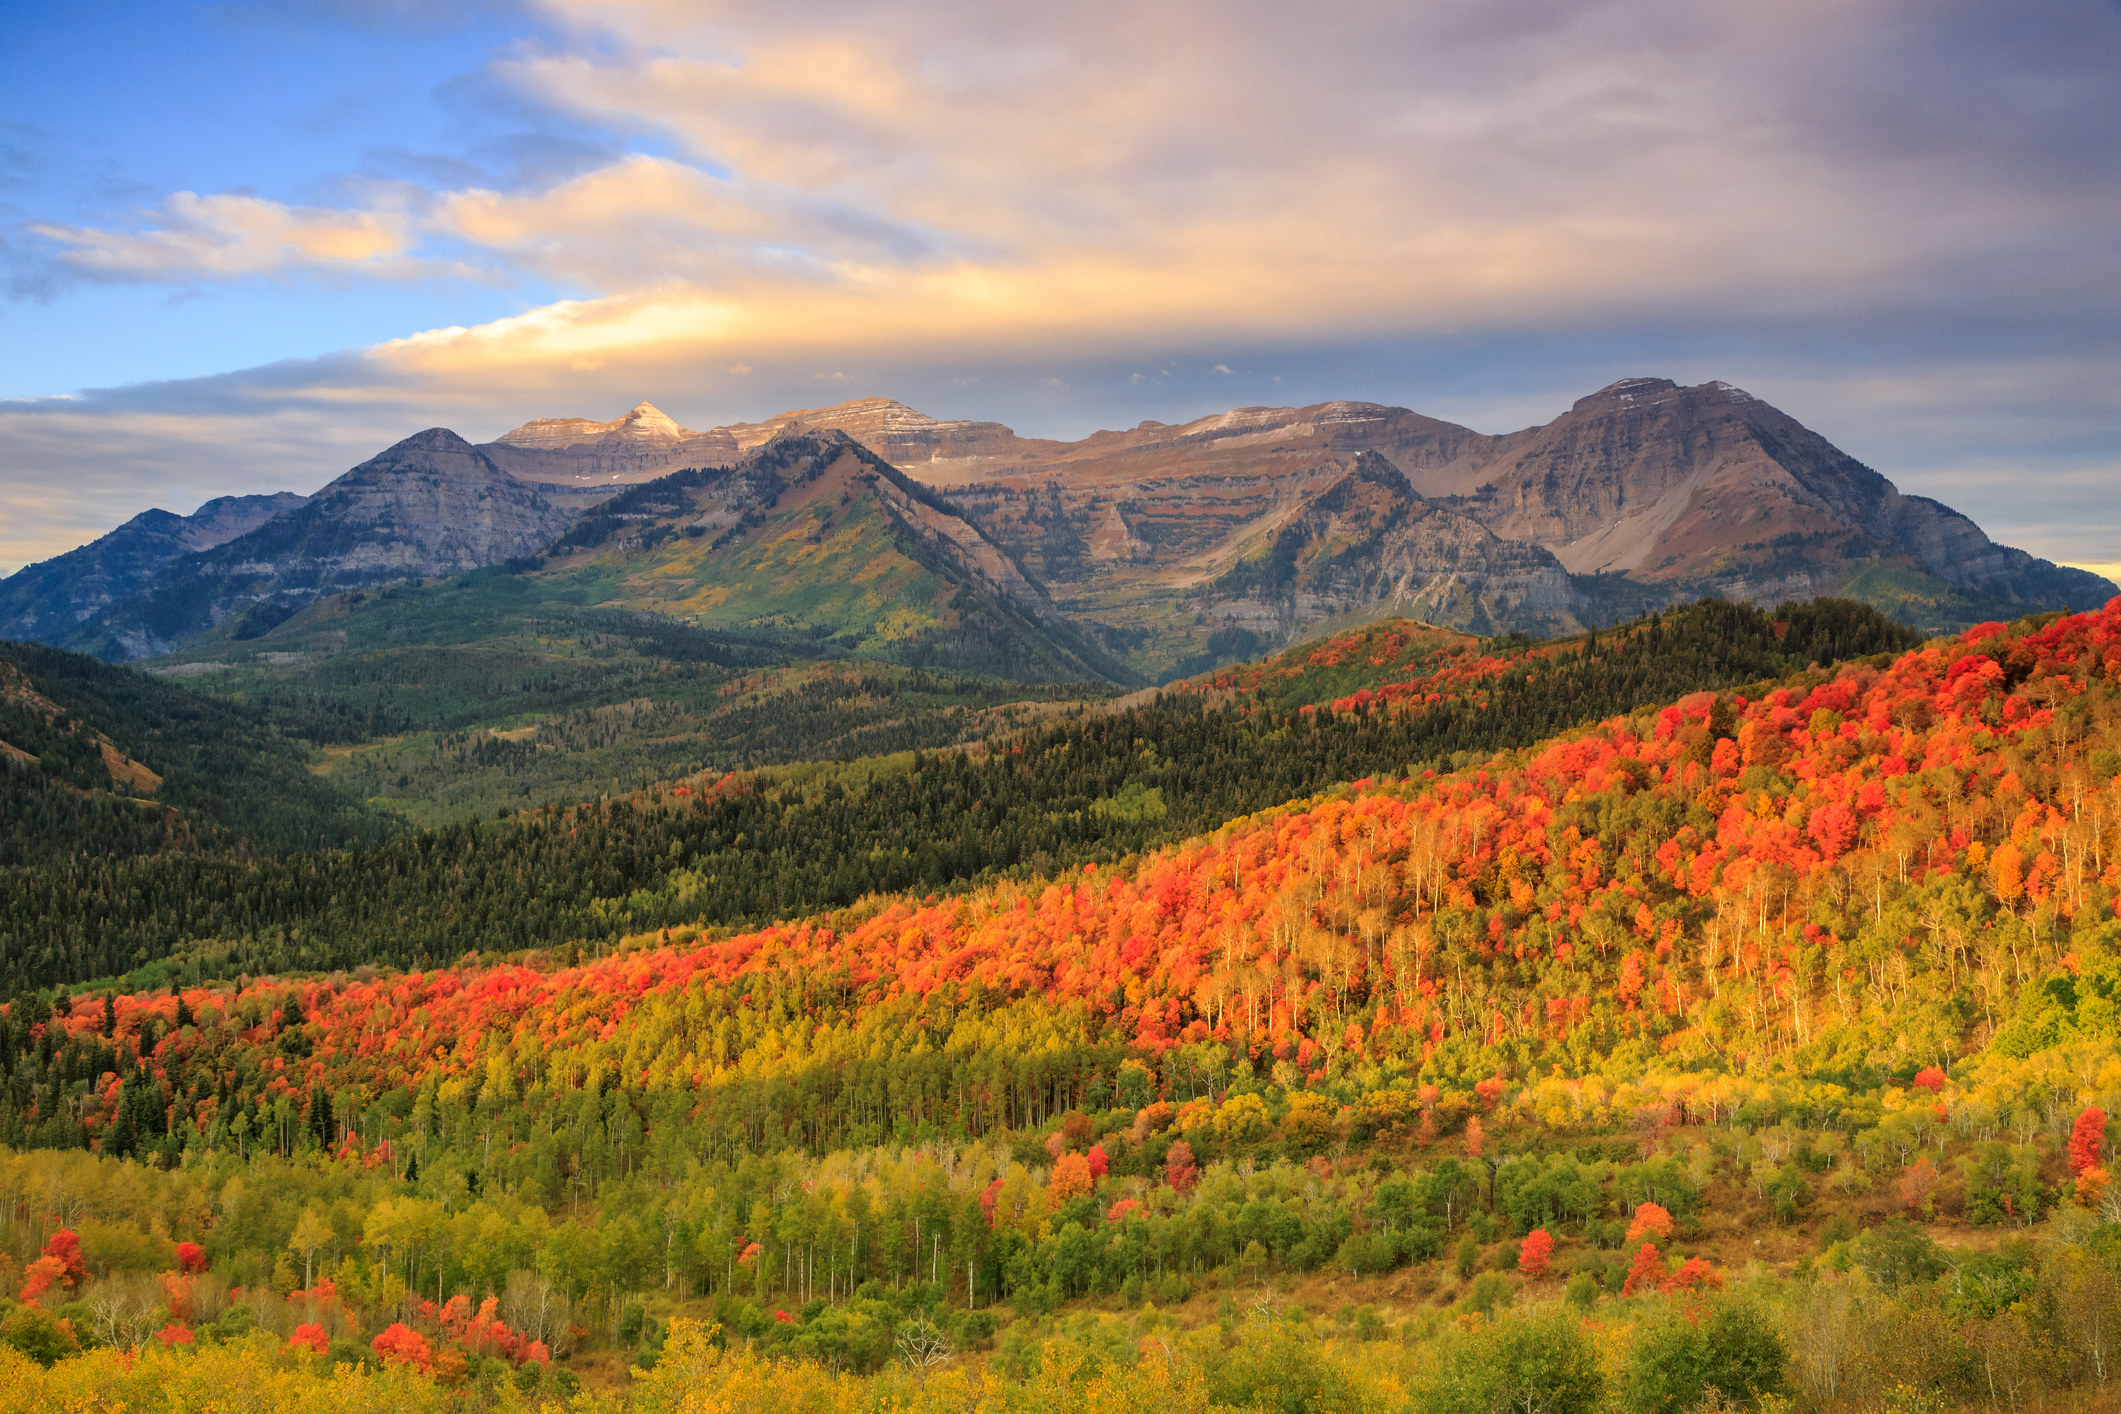 Autumn leaves at dawn in the Wasatch Mountains